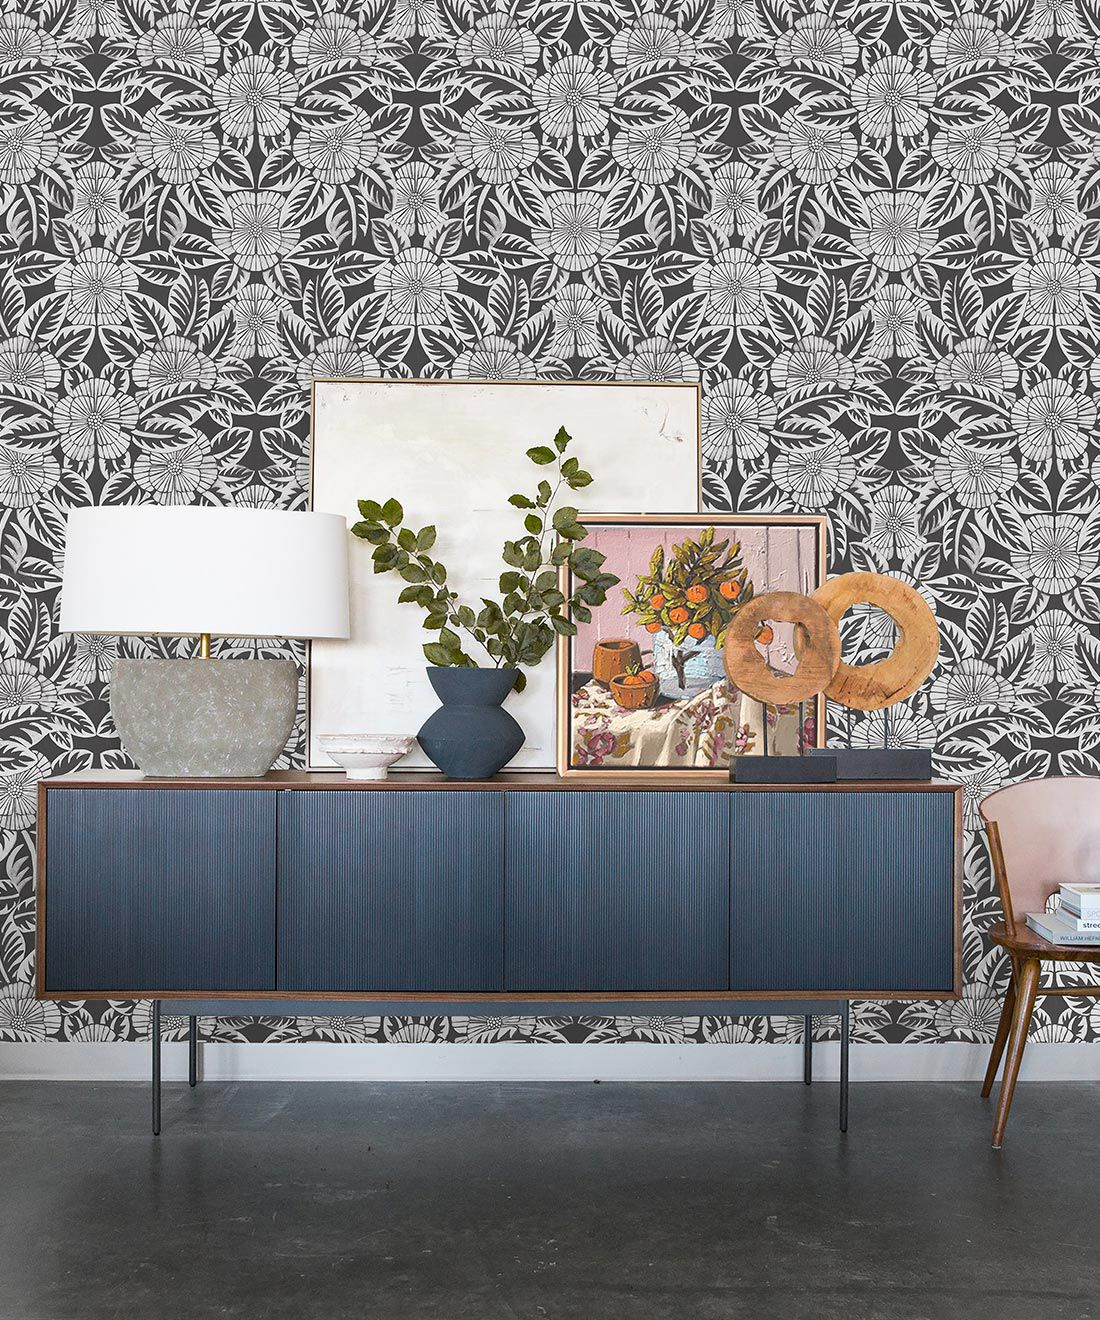 Calcutta Wallpaper • Flower and Leaf Motif Design • Ethnic Wallpaper • Charcoal Wallpaper • Insitu